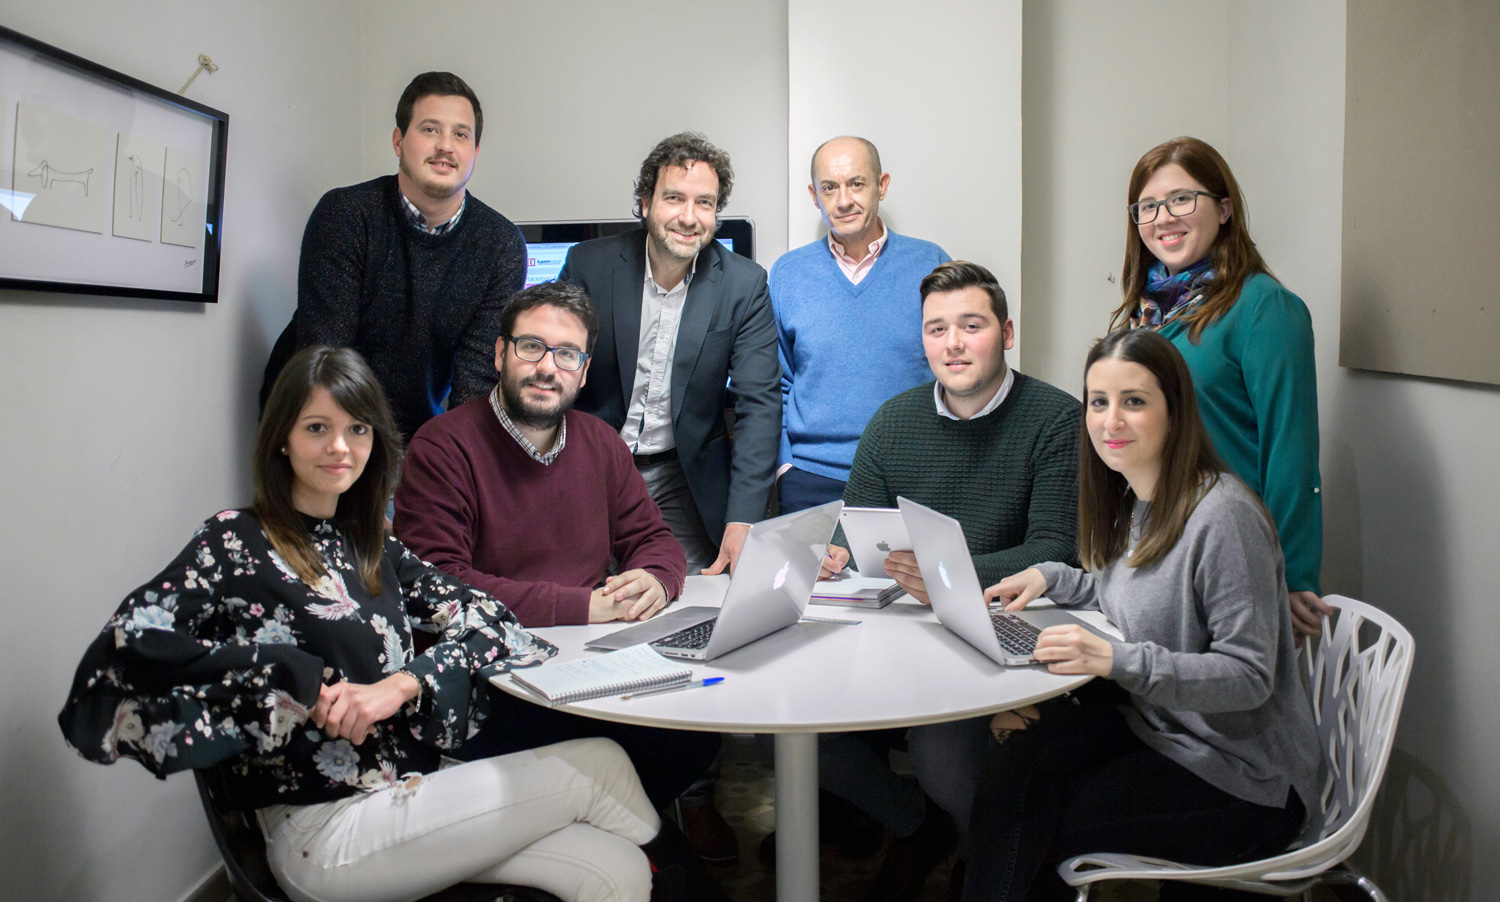 Agencia de Marketing y Comunicación en Valencia